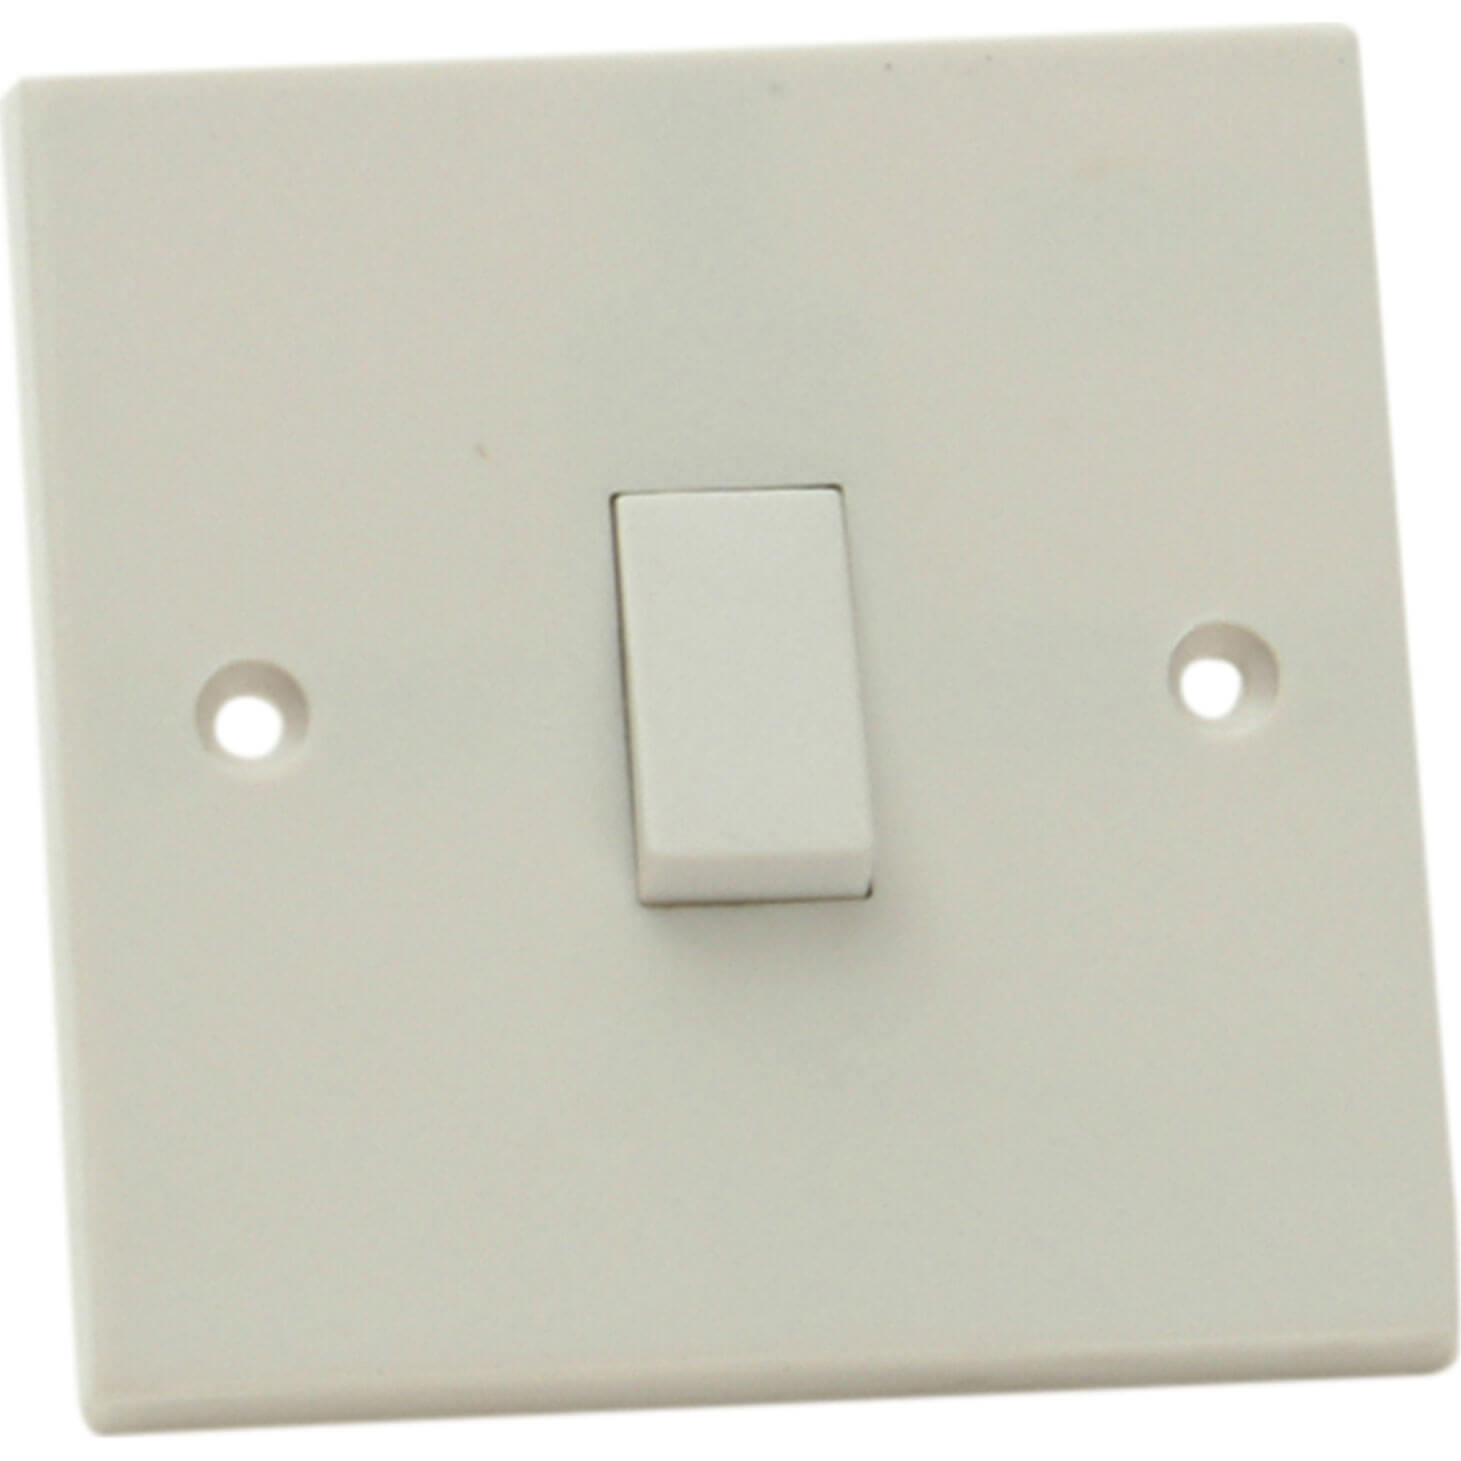 Tooled Up/Electrical & Lighting/Lighting & light bulbs/Smj 1 Gang 2 Way Light Switch